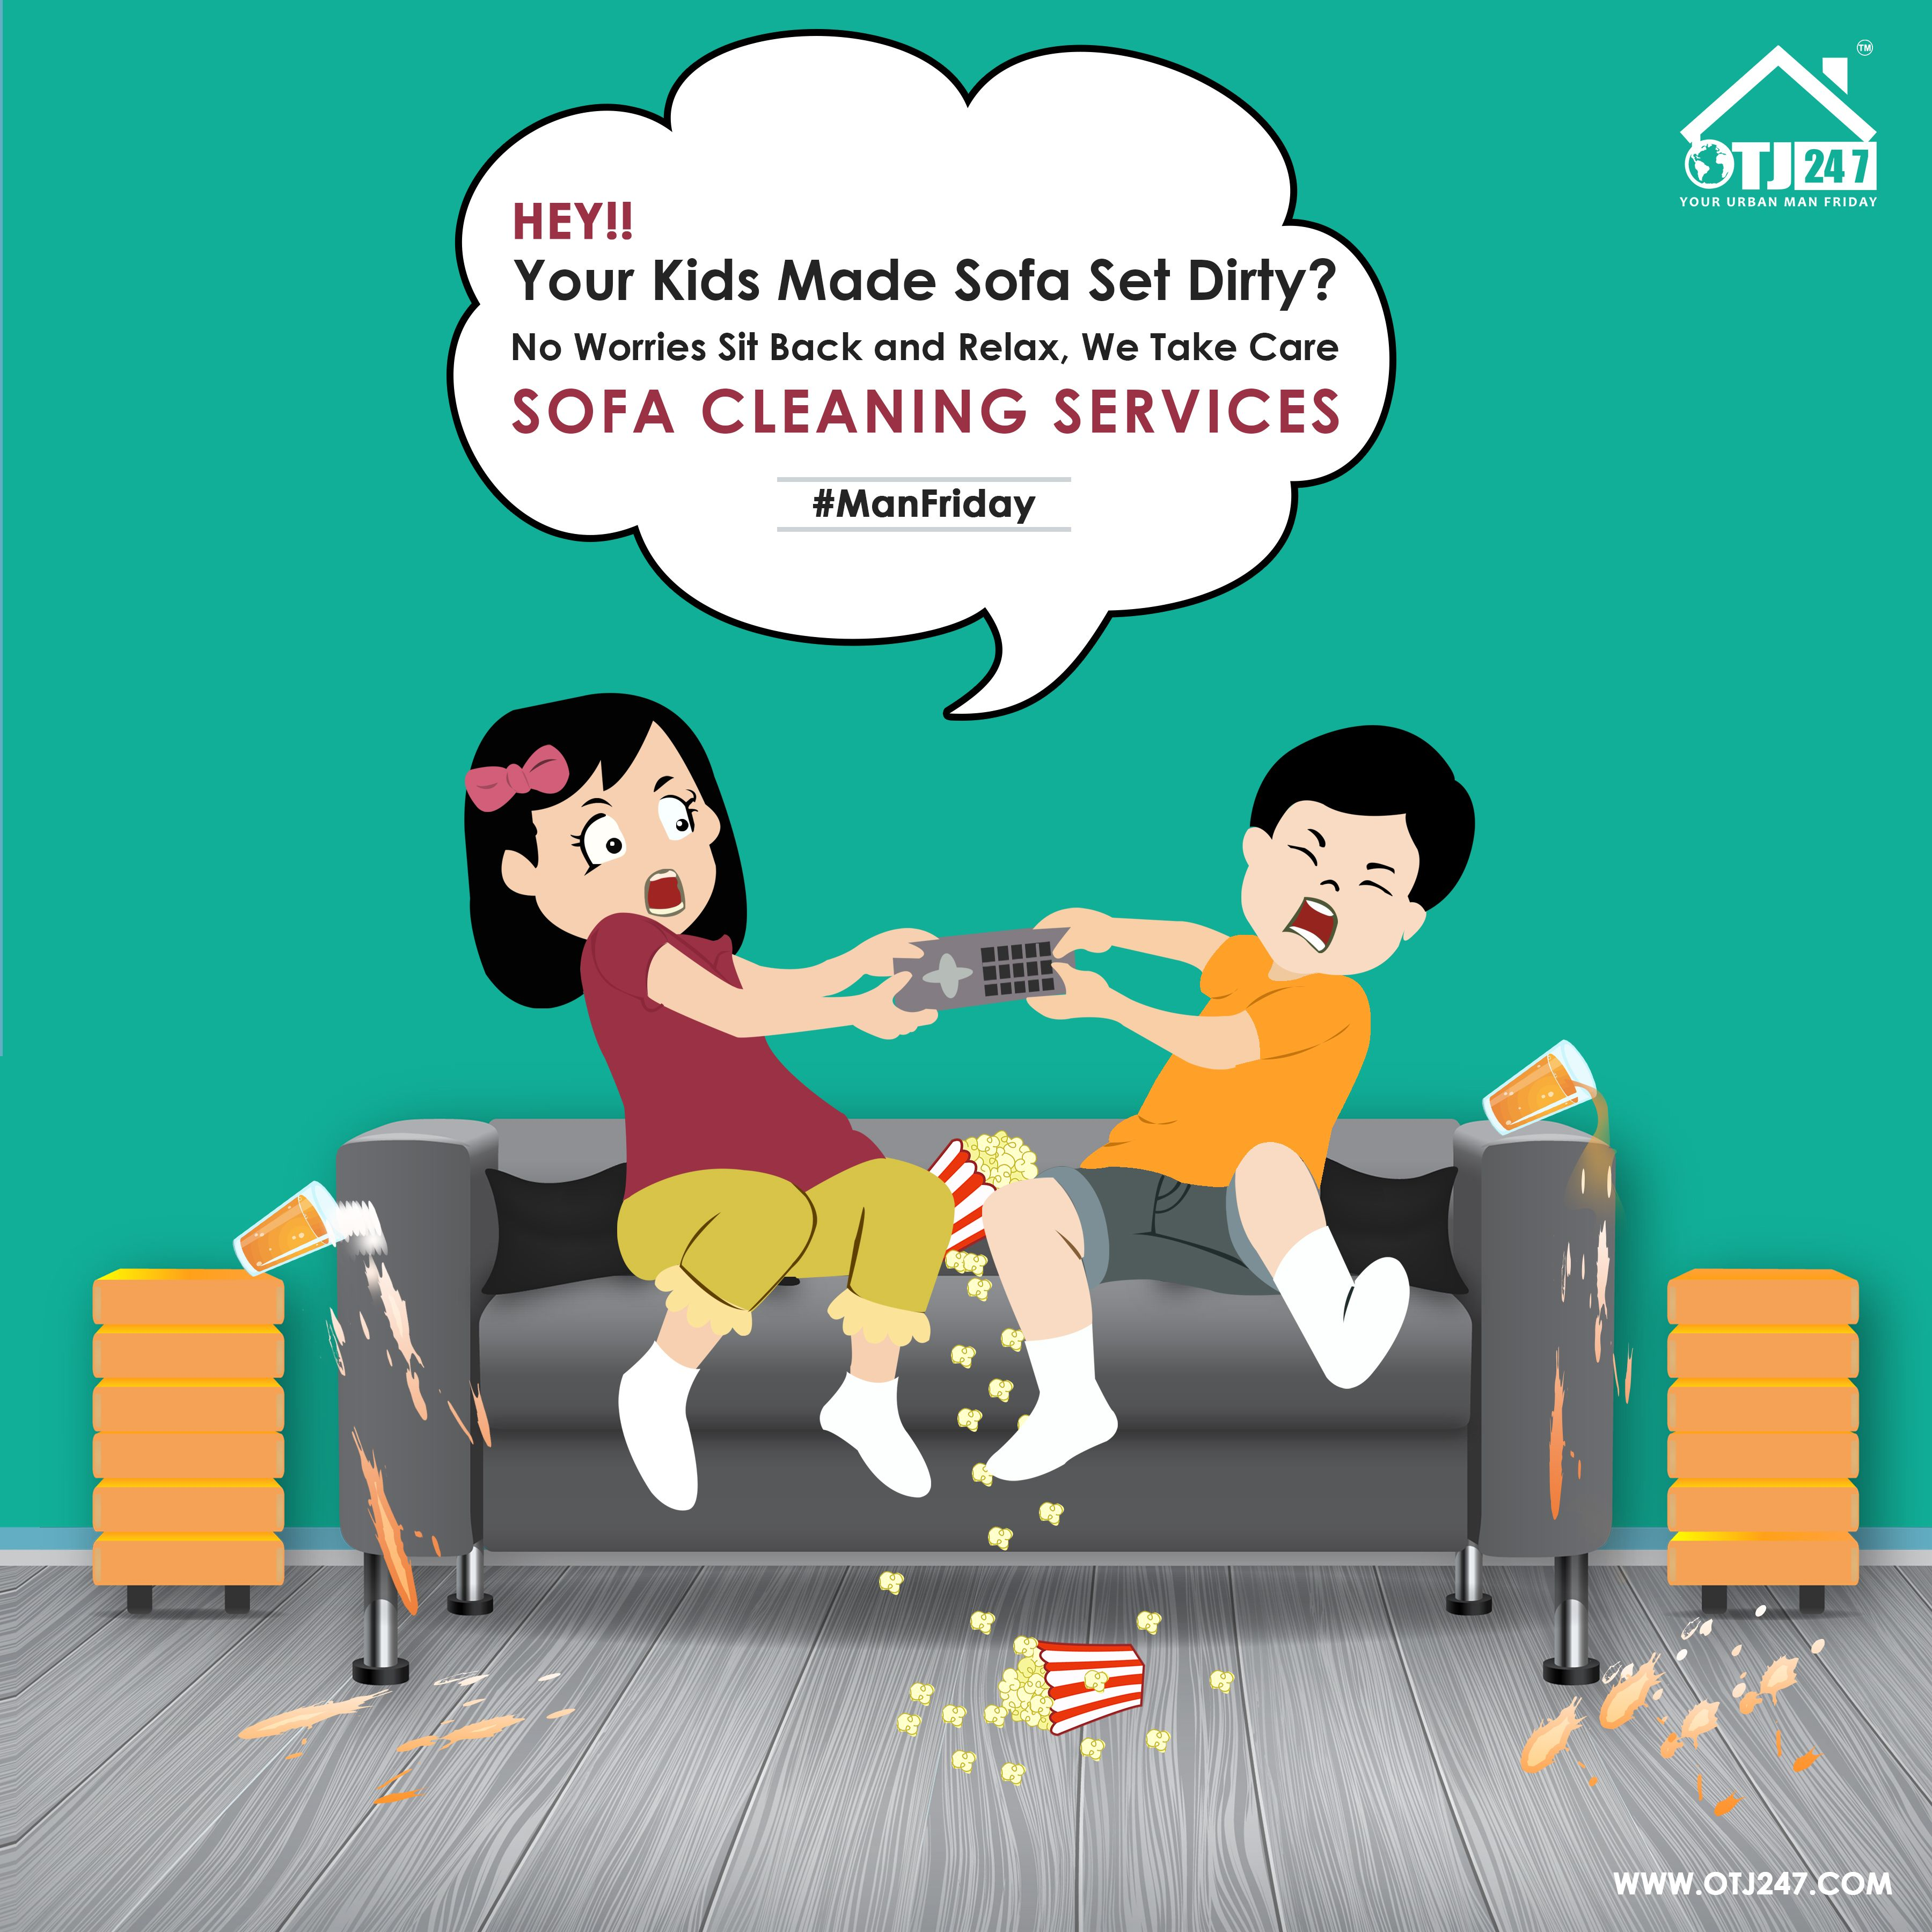 sofa cleaning services bangalore fortress hey your kids made set dirty no worries sit back